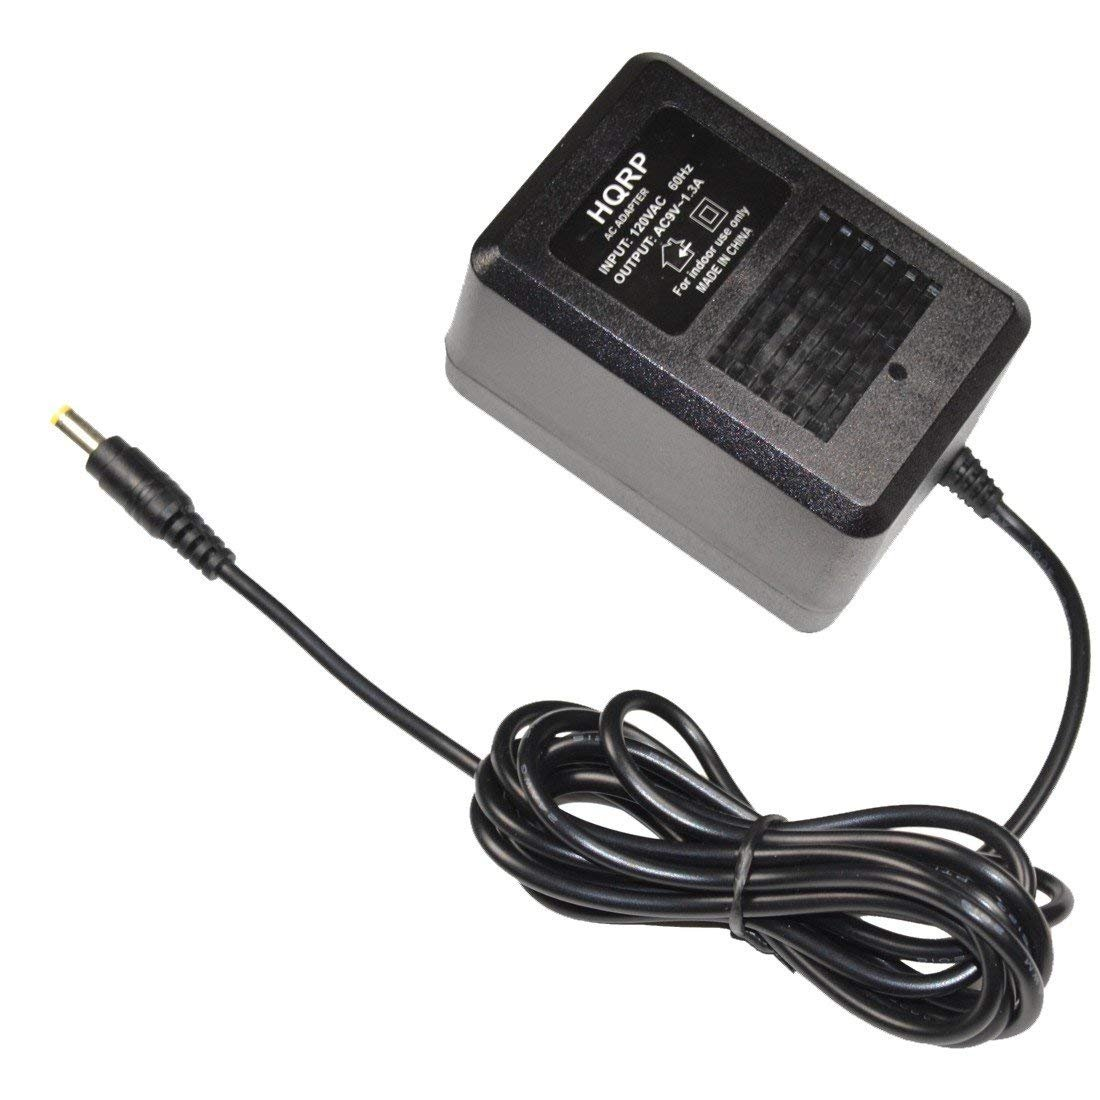 HQRP AC Adapter for DigiTech Vocalist Live 2 / Vocalist Live 3 / Vocalist Live 3D, Whammy 4 Guitar multi effects pedals, Power Supply Cord + HQRP Coaster